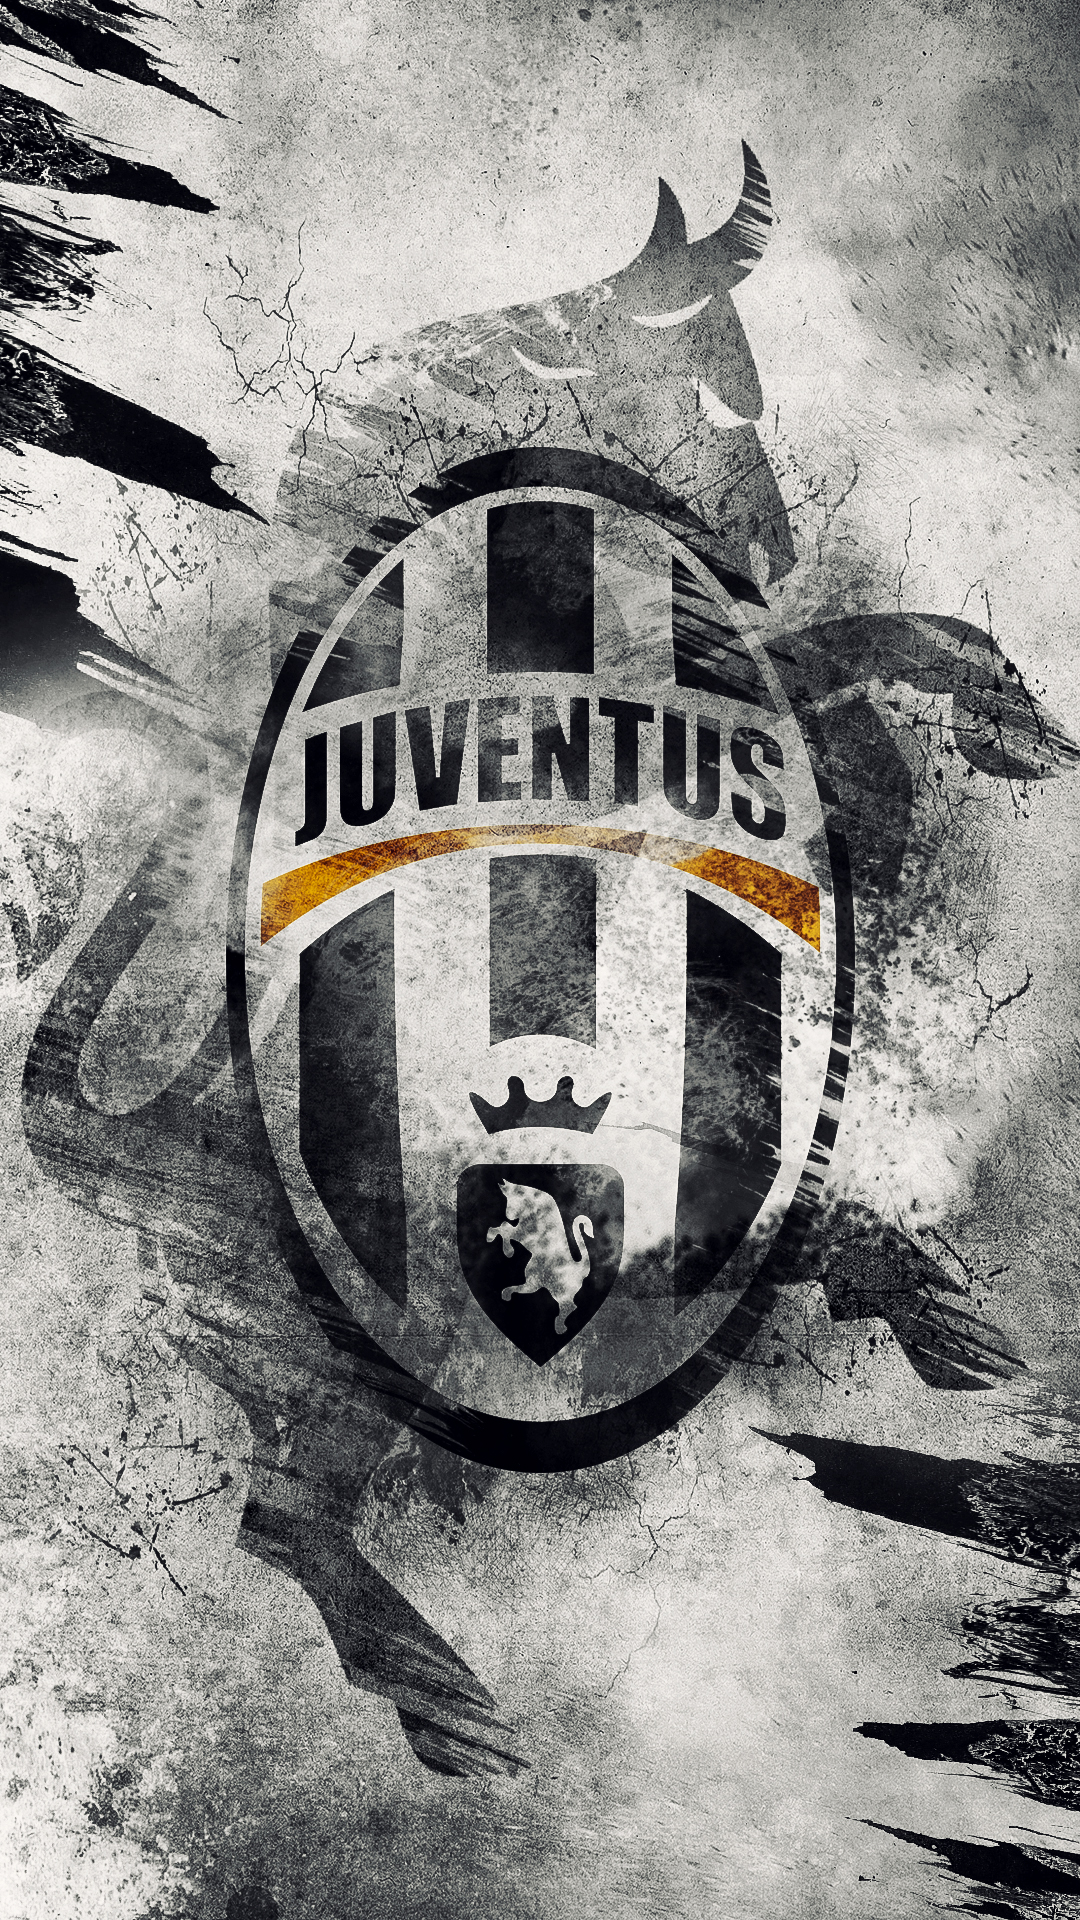 Juventus hd logo wallpaper by kerimov23 on deviantart for Sfondo juventus hd